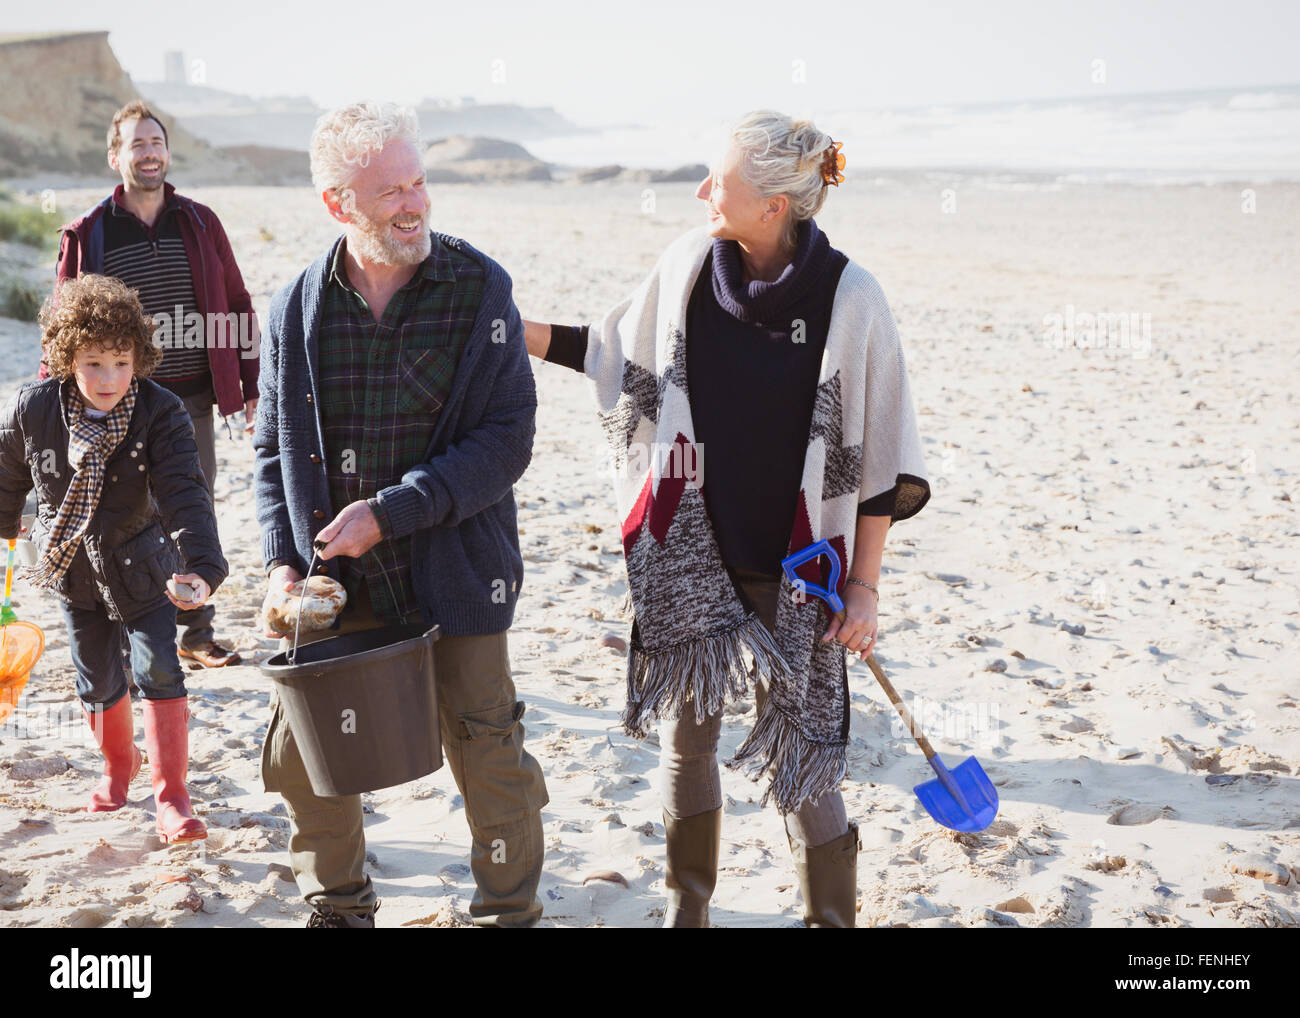 Multi-generation family clam digging on beach - Stock Image